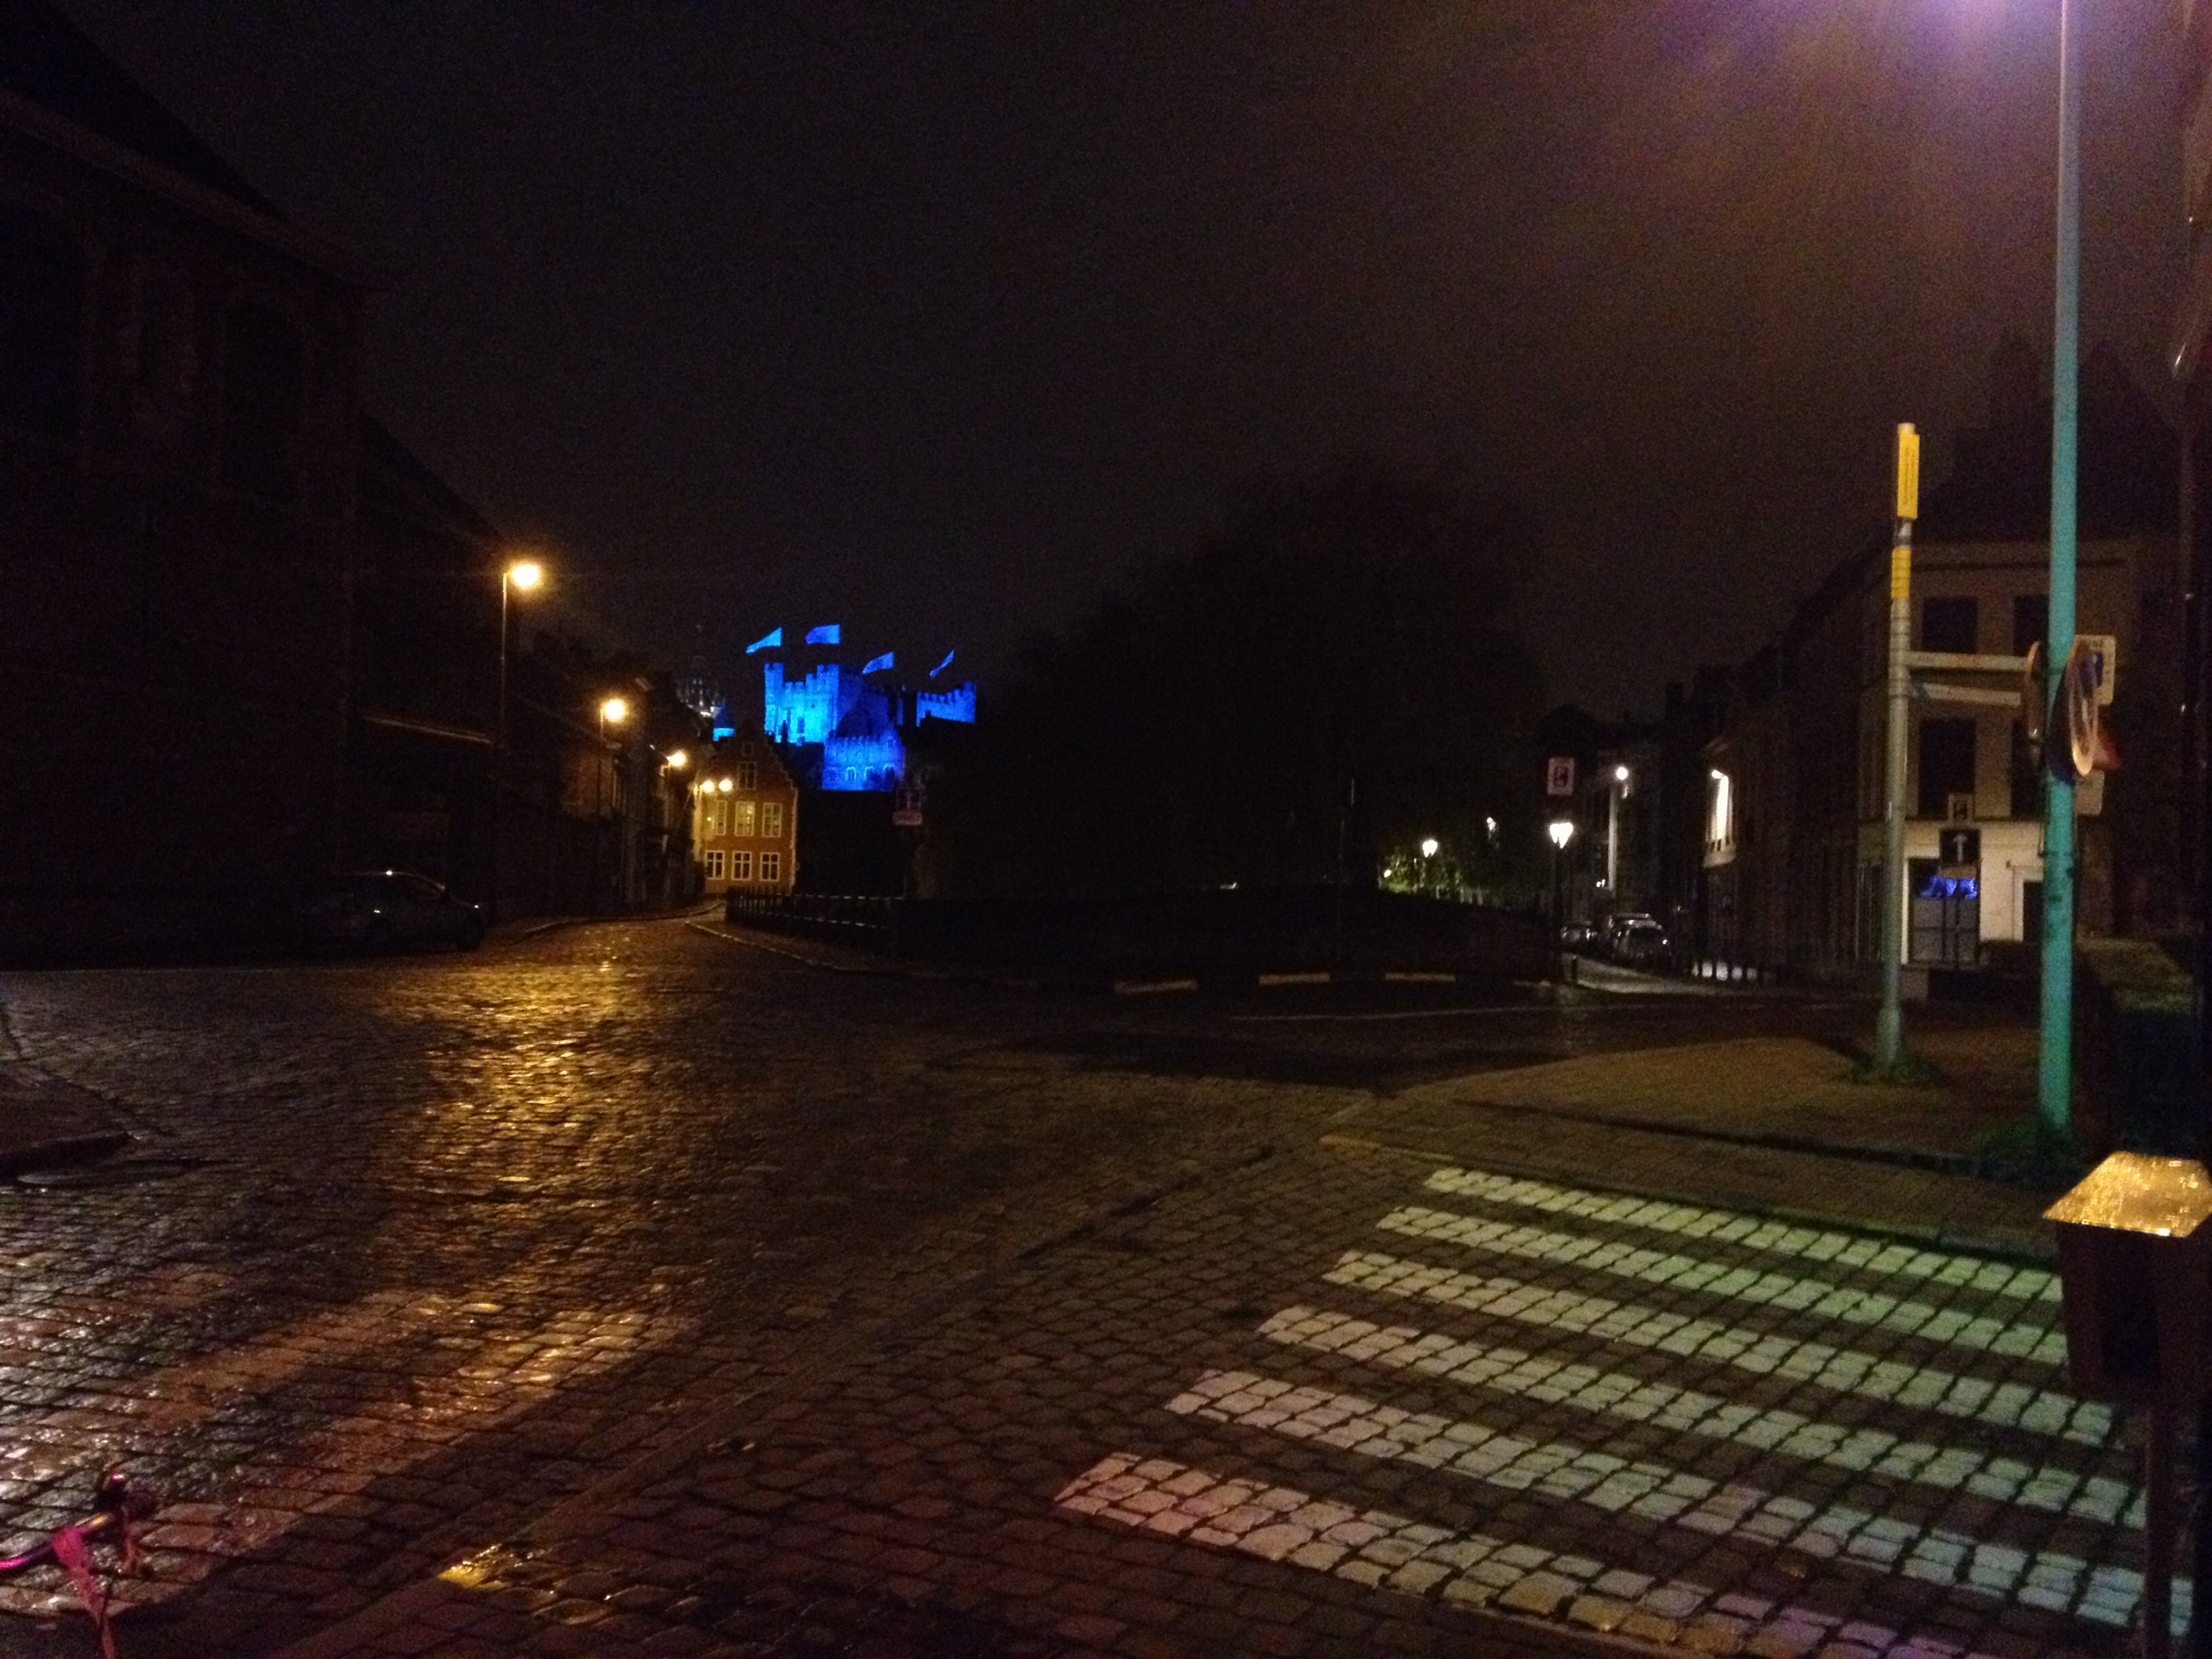 The Castle is Feeling Blue Tonight